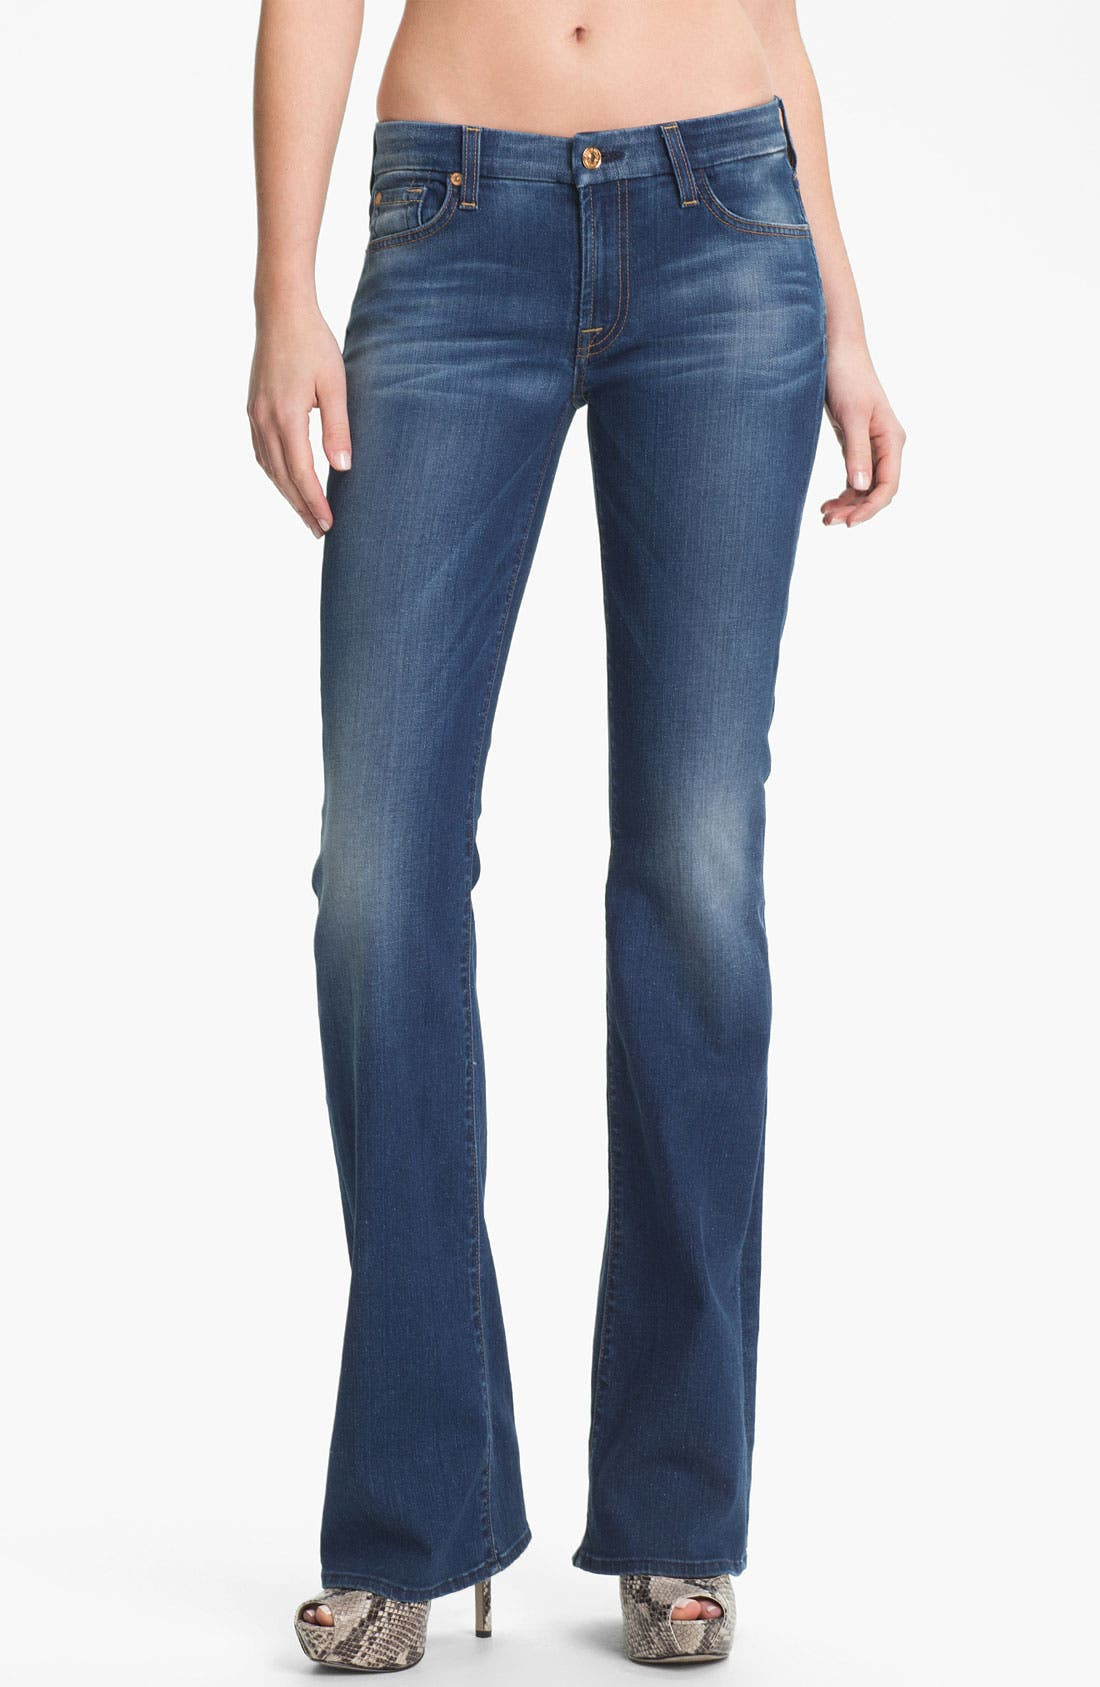 Alternate Image 1 Selected - 7 For All Mankind® 'Kimmie' Bootcut Jeans (Light Blue Stretch)